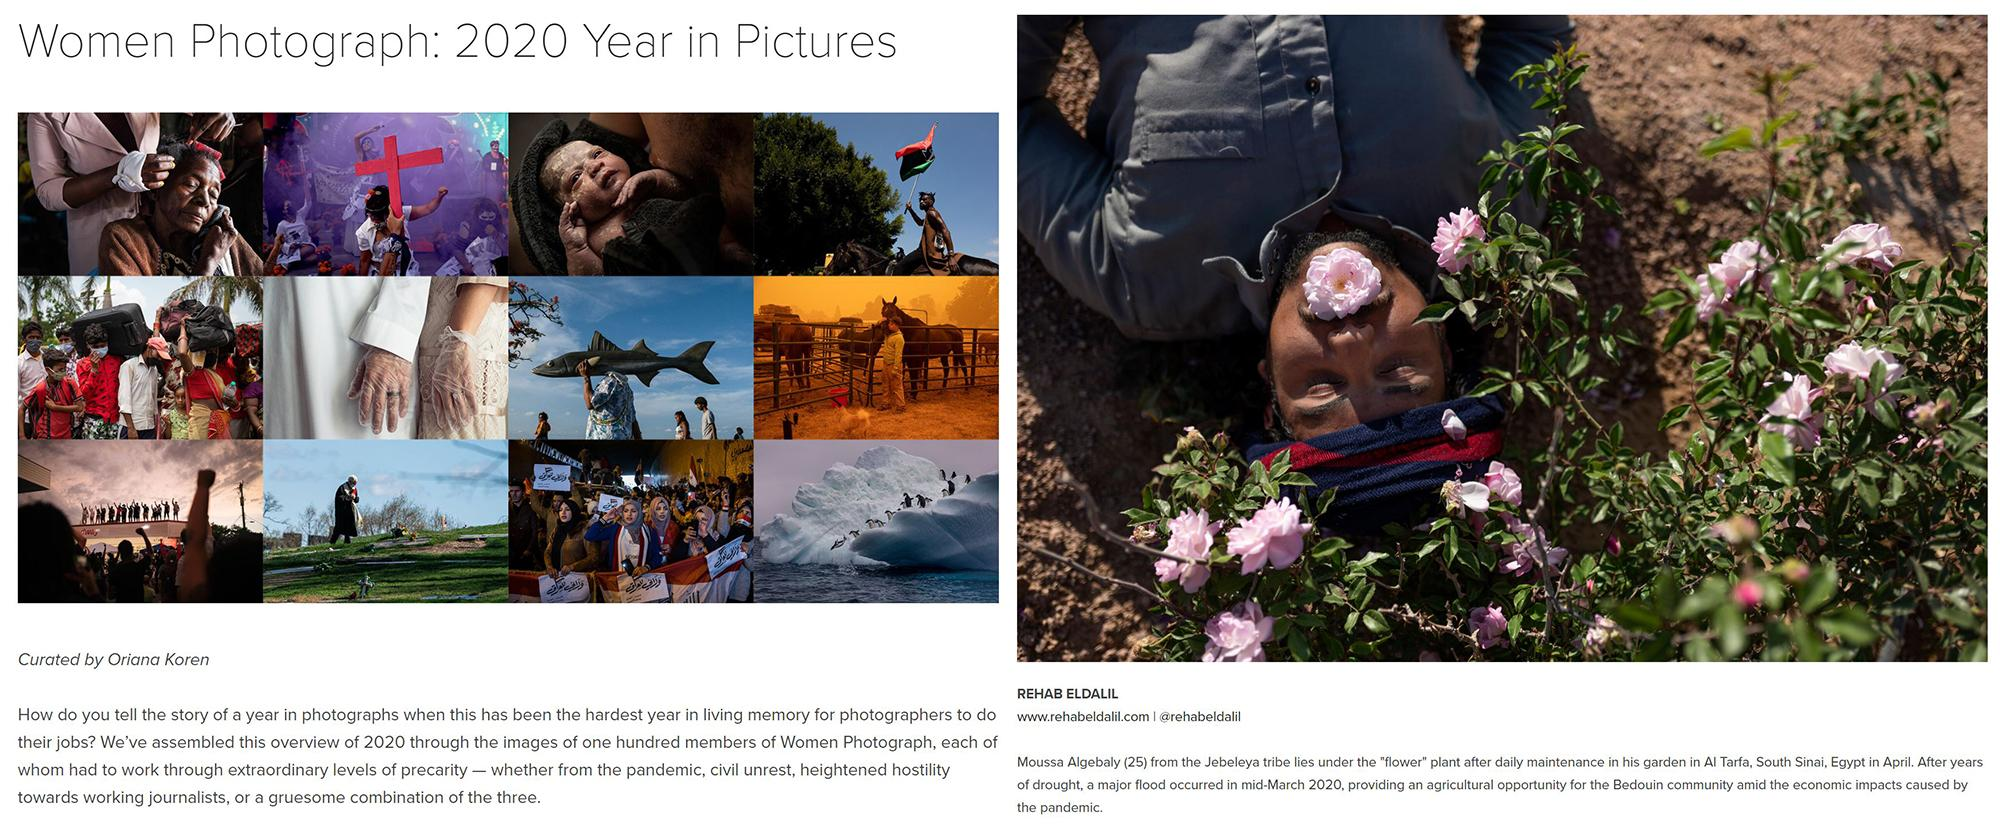 Women Photograph, Image digital and print publication, 2020 https://www.womenphotograph.com/news/2020-year-in-pictures